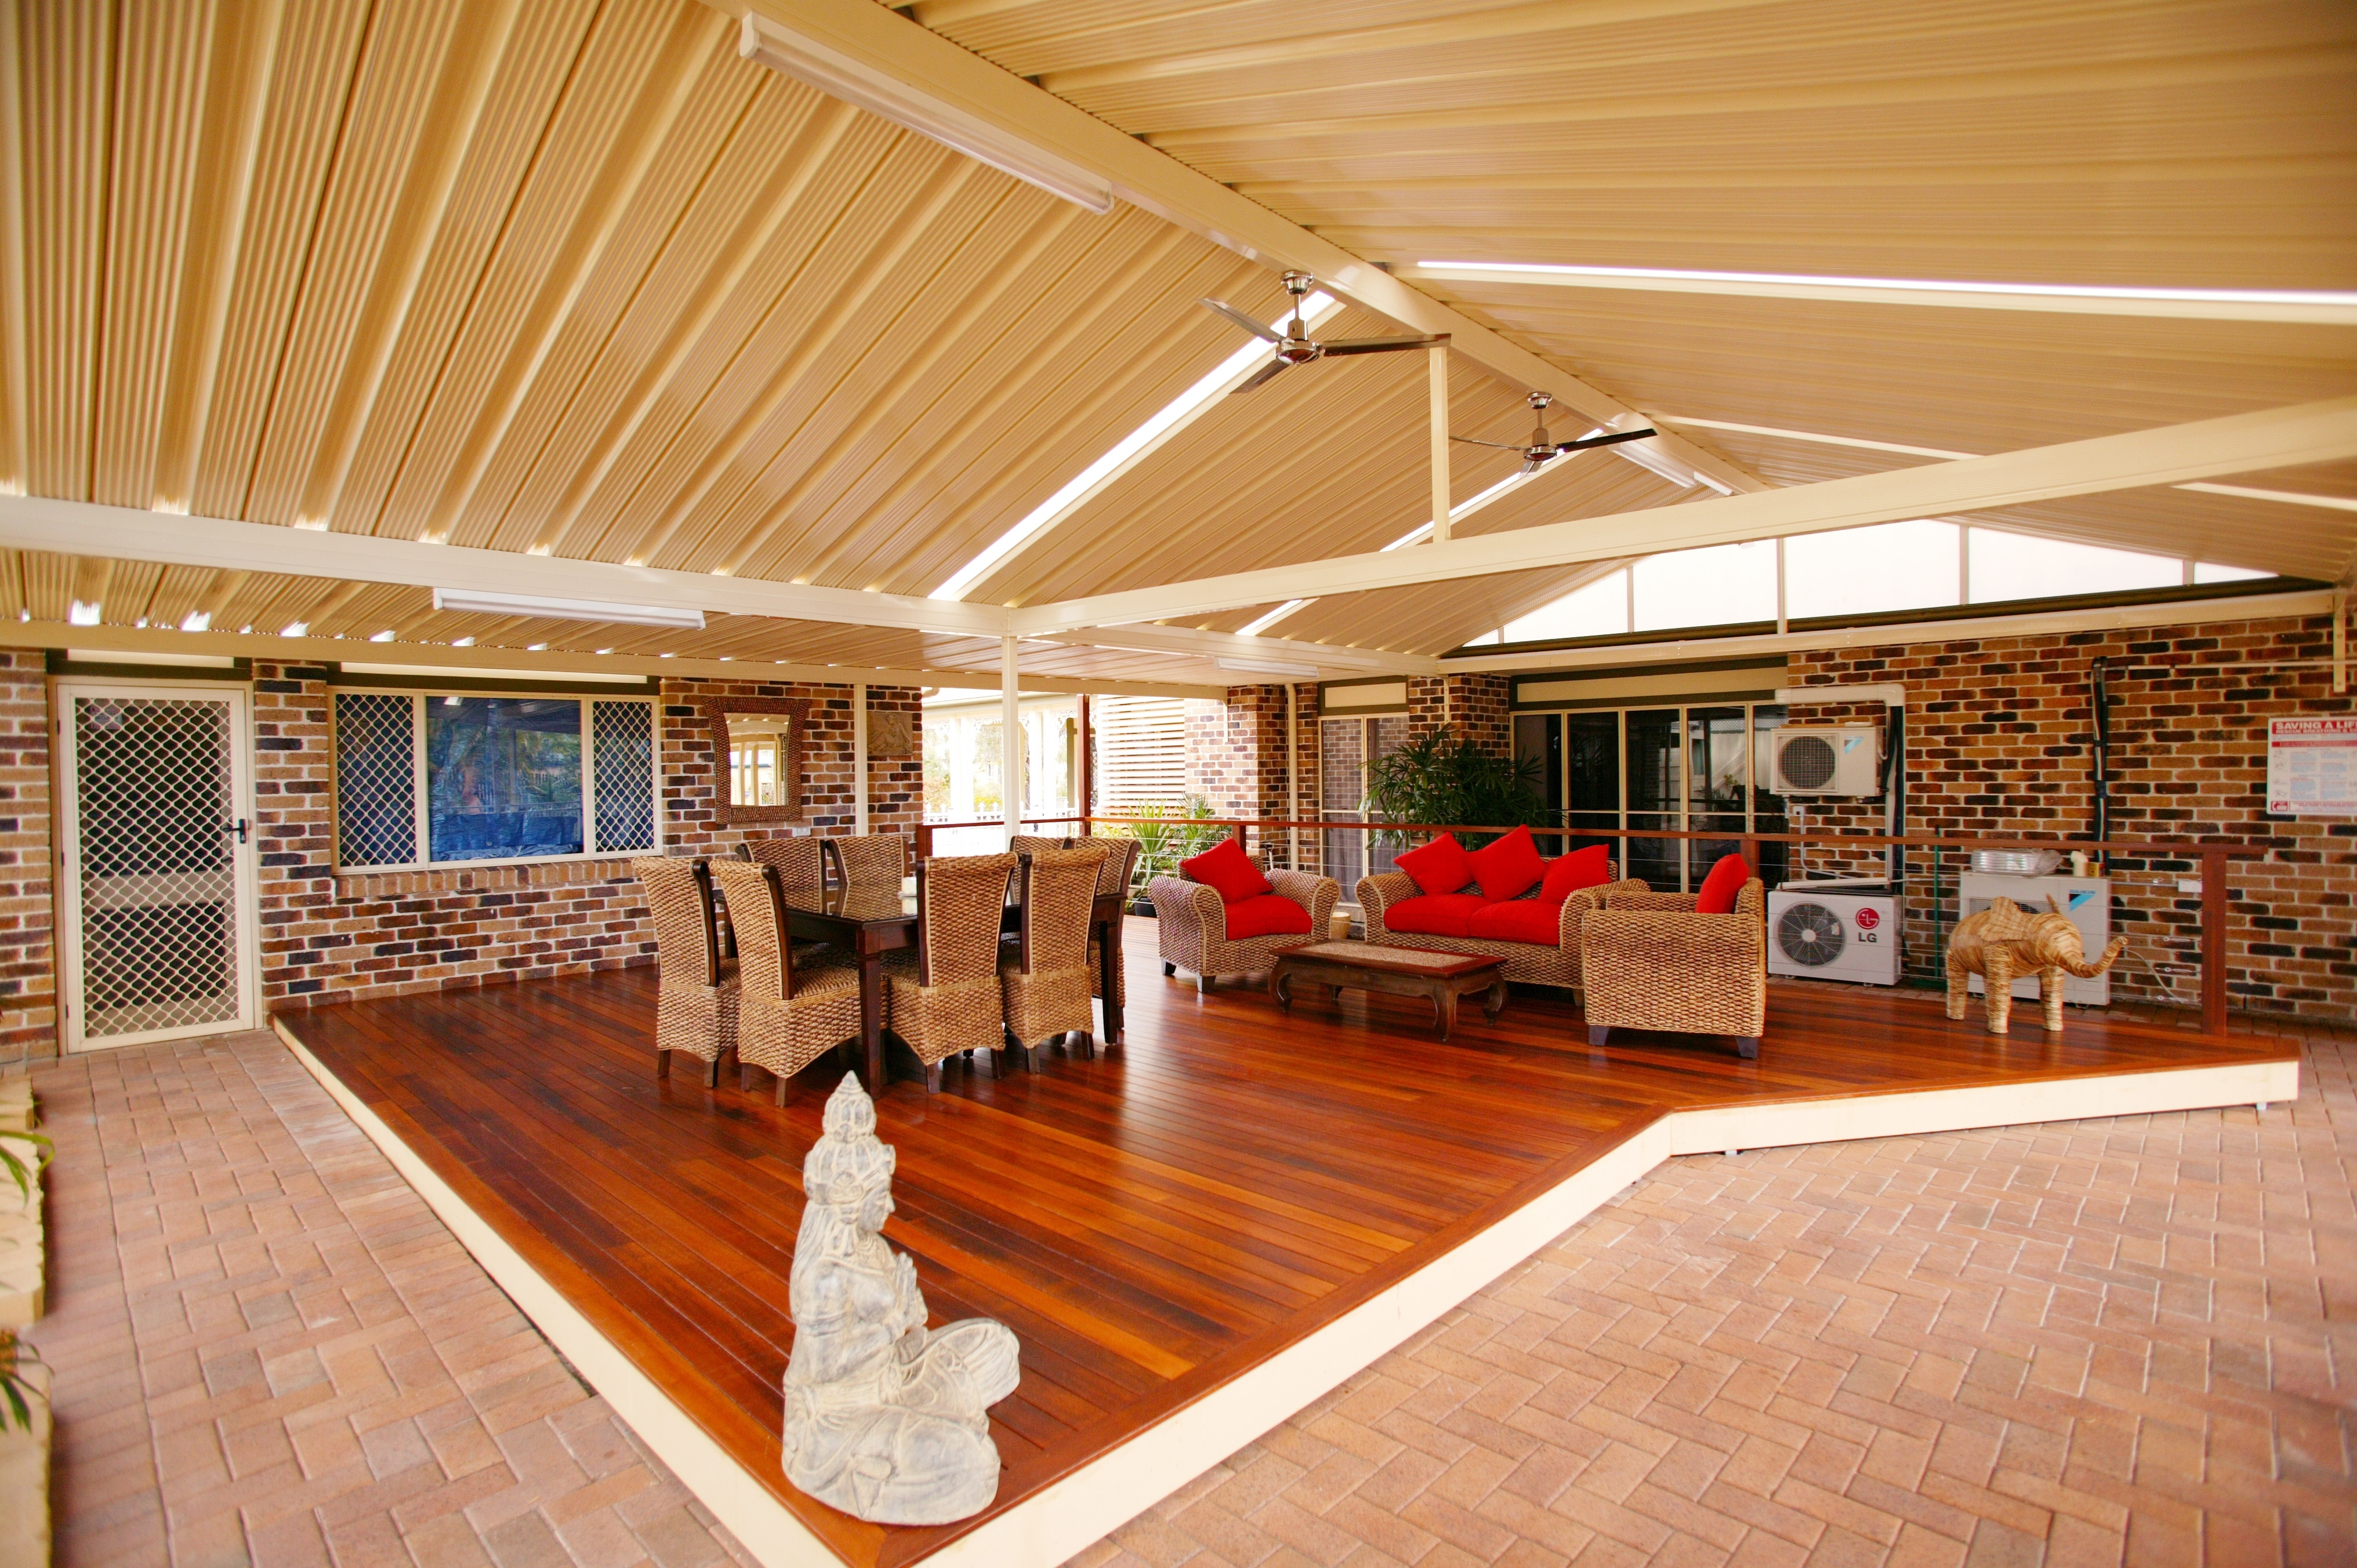 Apollo Patios Patio Builders 9 16 Karungi Cres Port